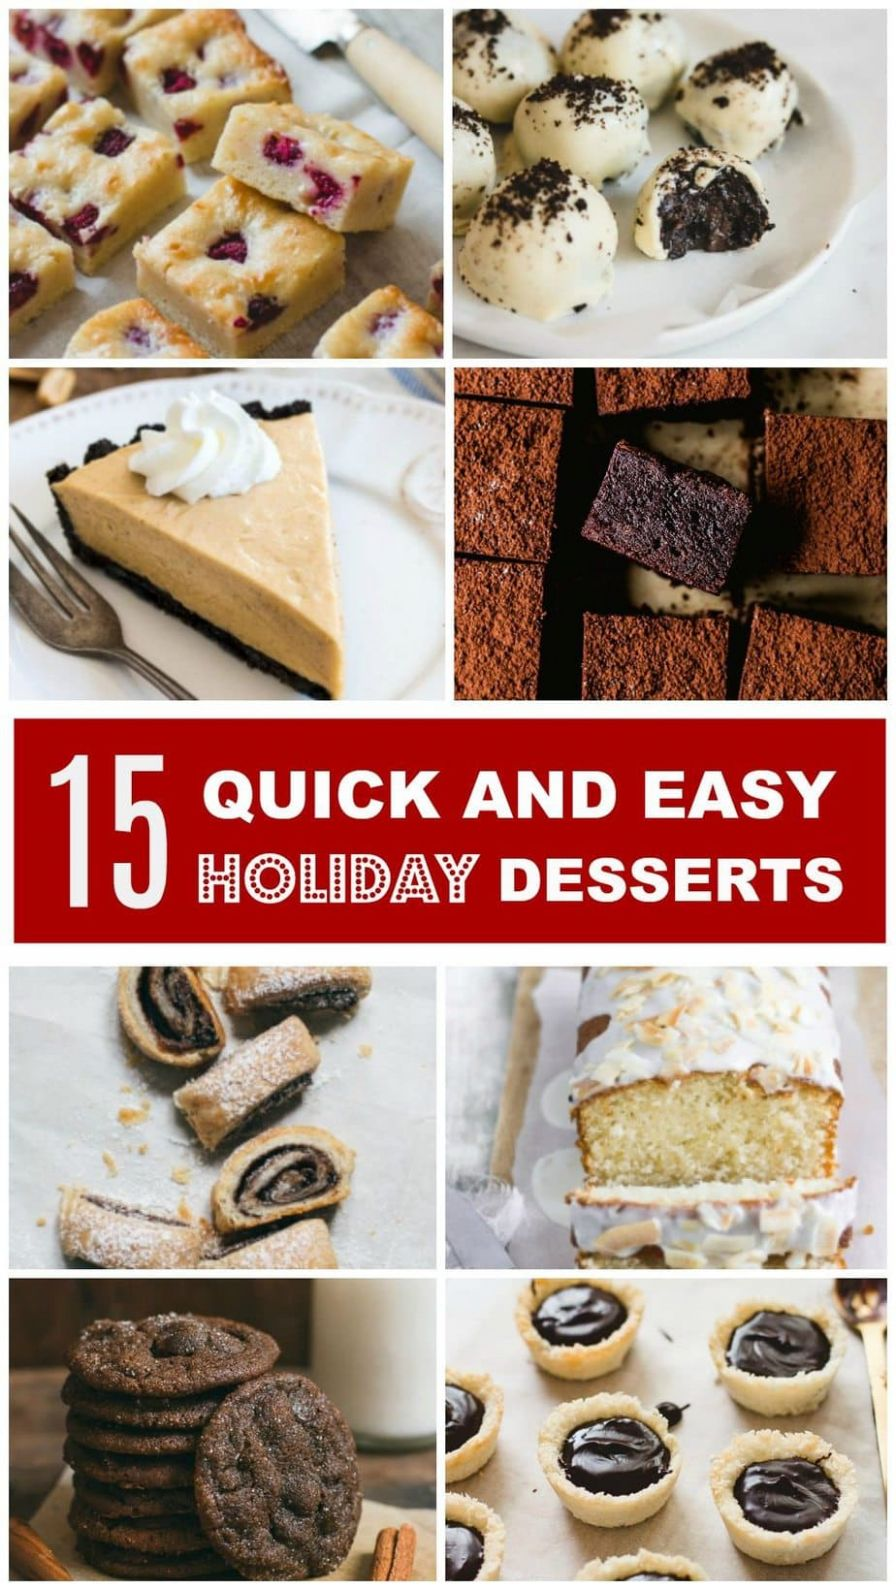 8 Quick and Easy Holiday Desserts - Pretty. Simple. Sweet.